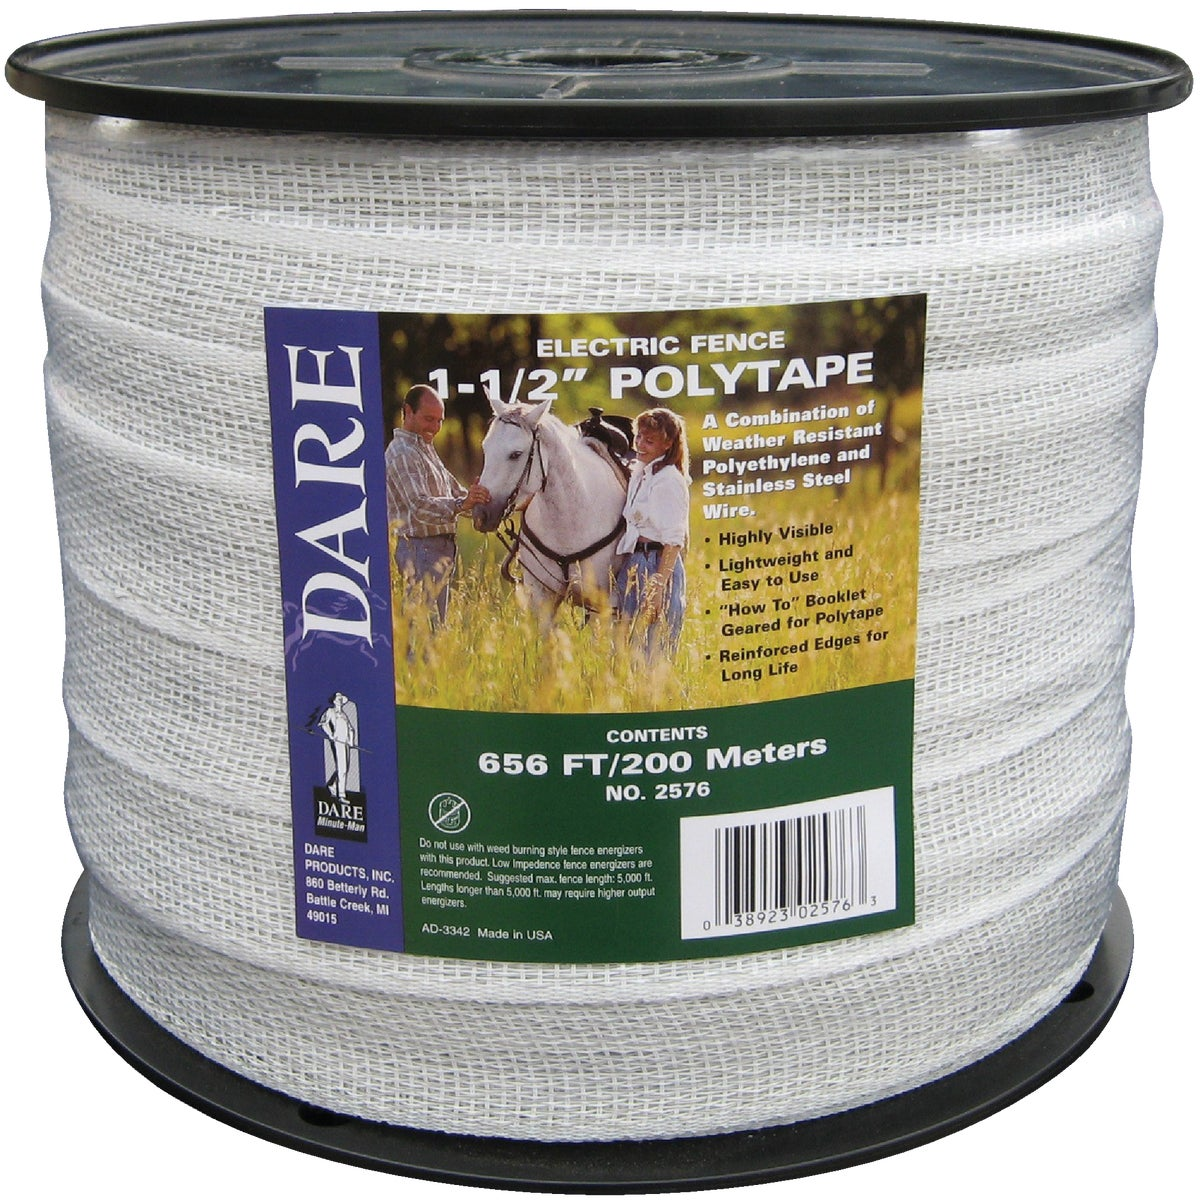 "1-1/2""X656' POLYTAPE - 2576 by Dare Products Inc"